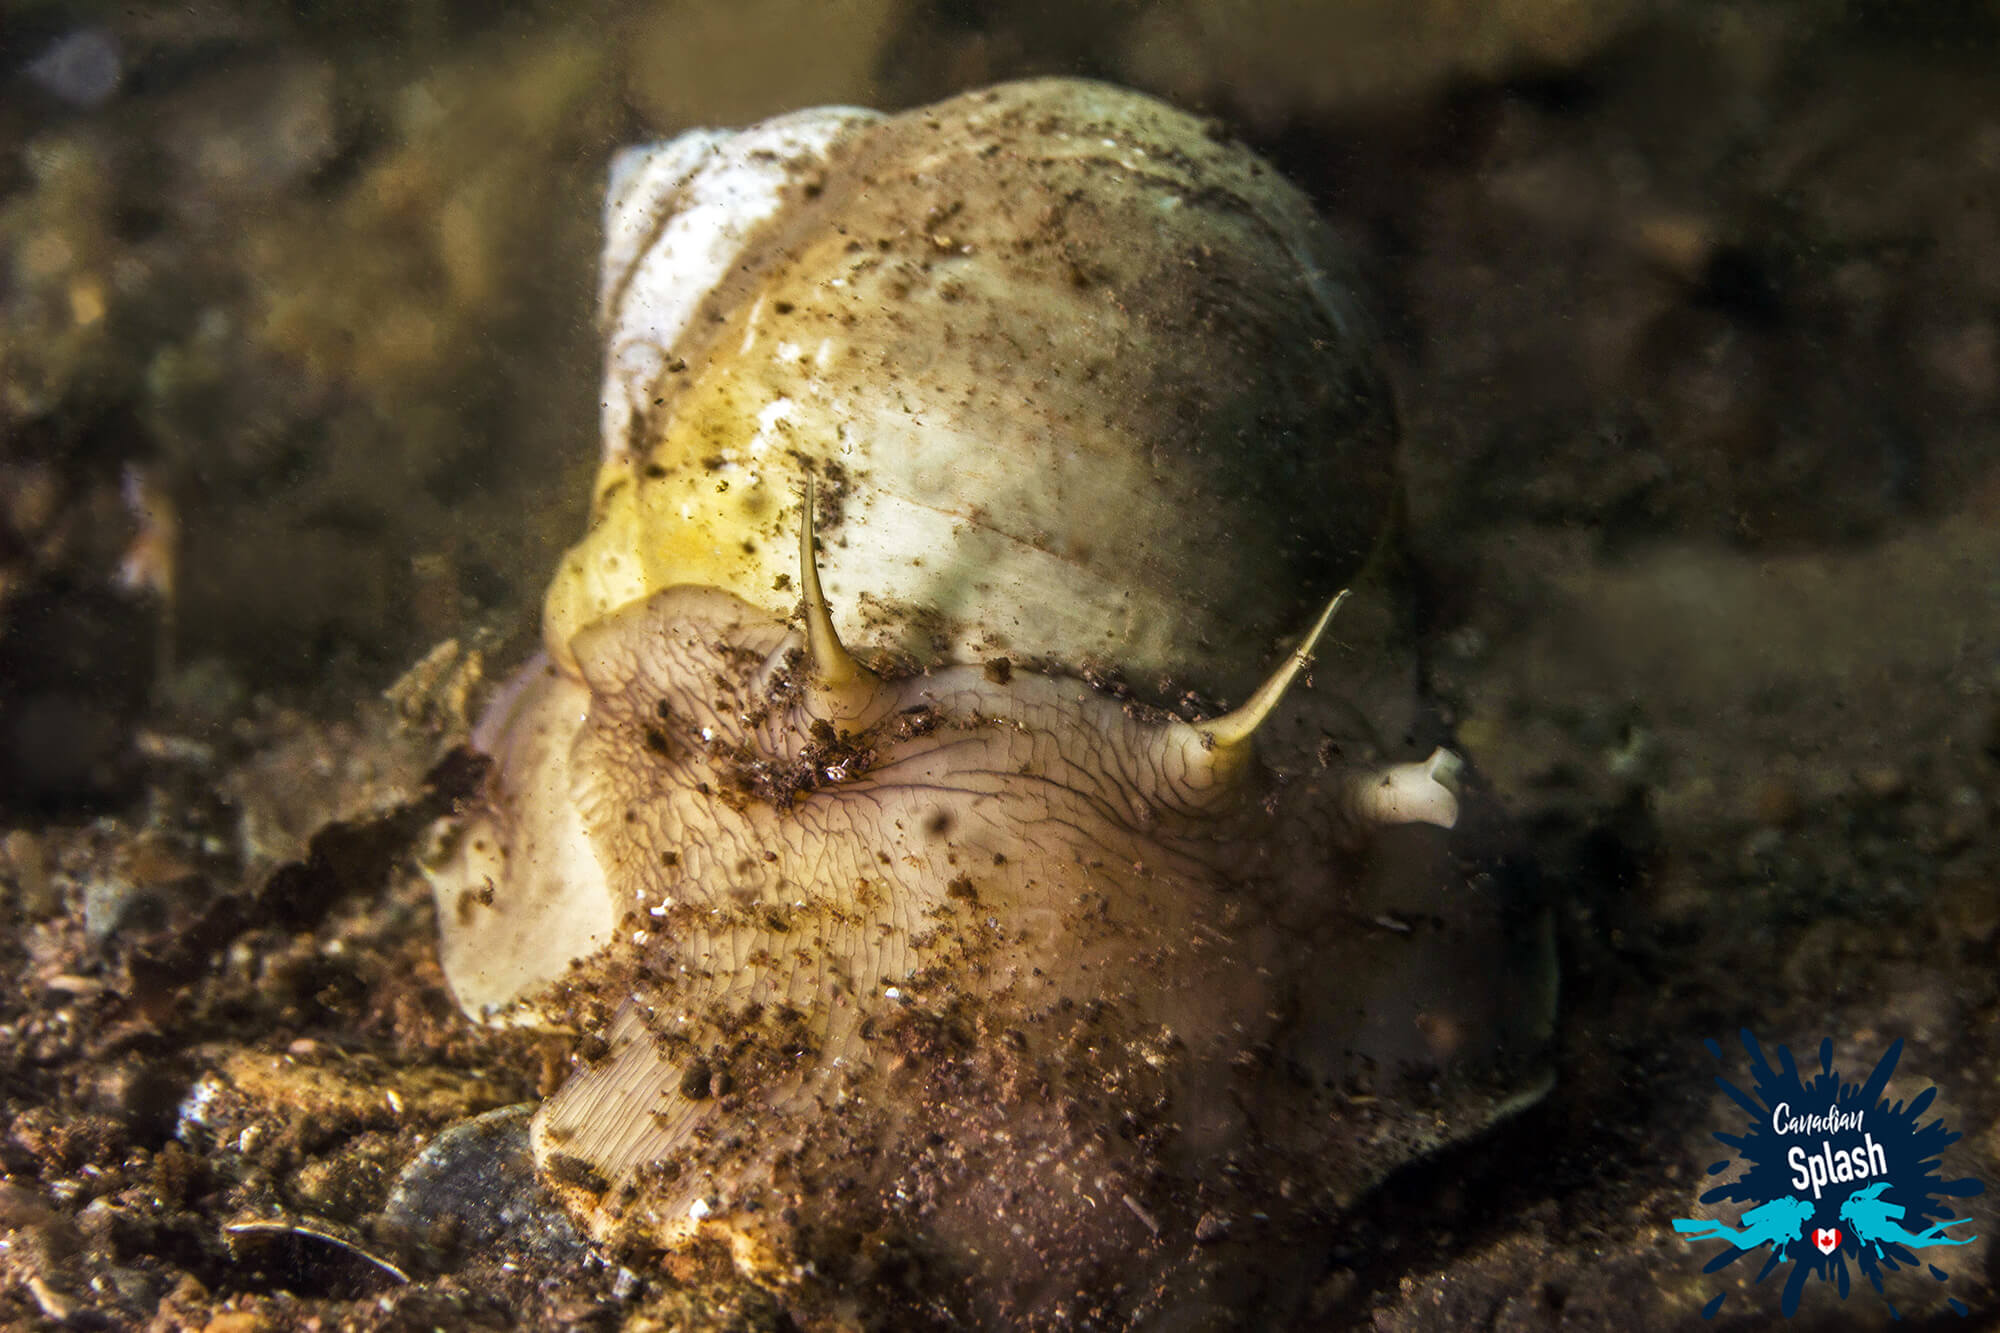 A Moon Snail On The Muddy Bottom Of Saint Andrews, New Brunswick, Canadian Splash Scuba Diving